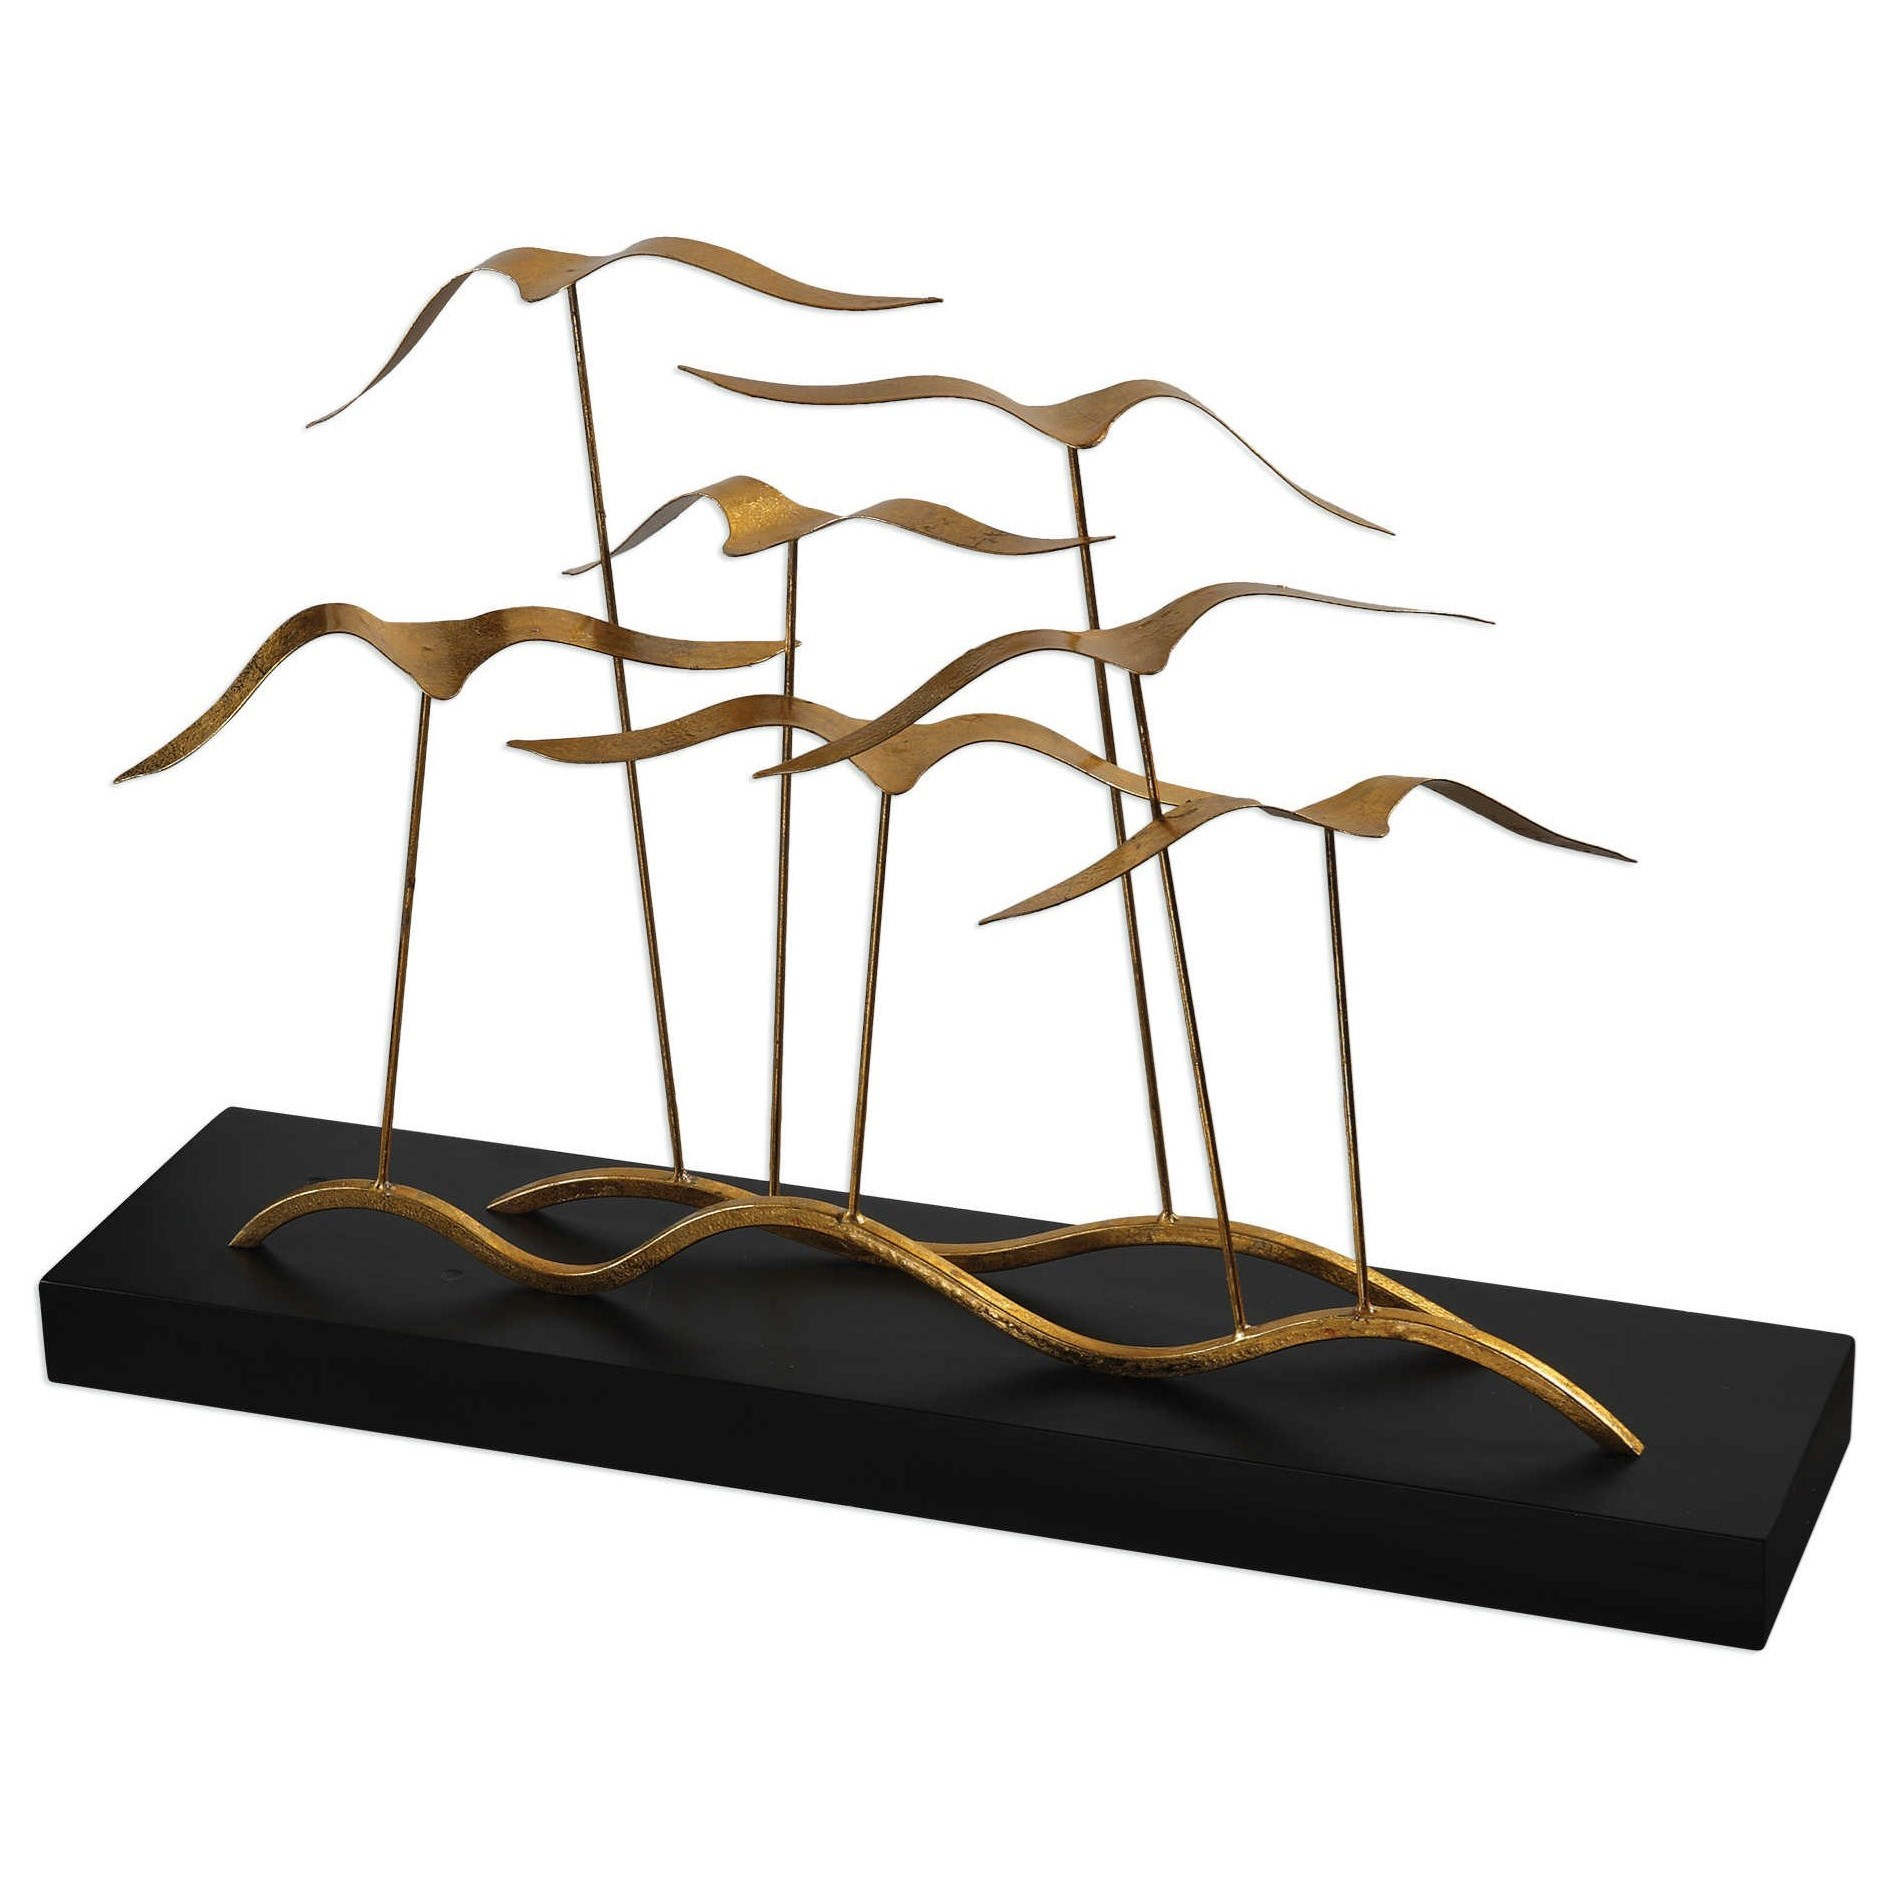 Accessories - Statues and Figurines Flock of Seagulls Sculpture by Uttermost at Dunk & Bright Furniture